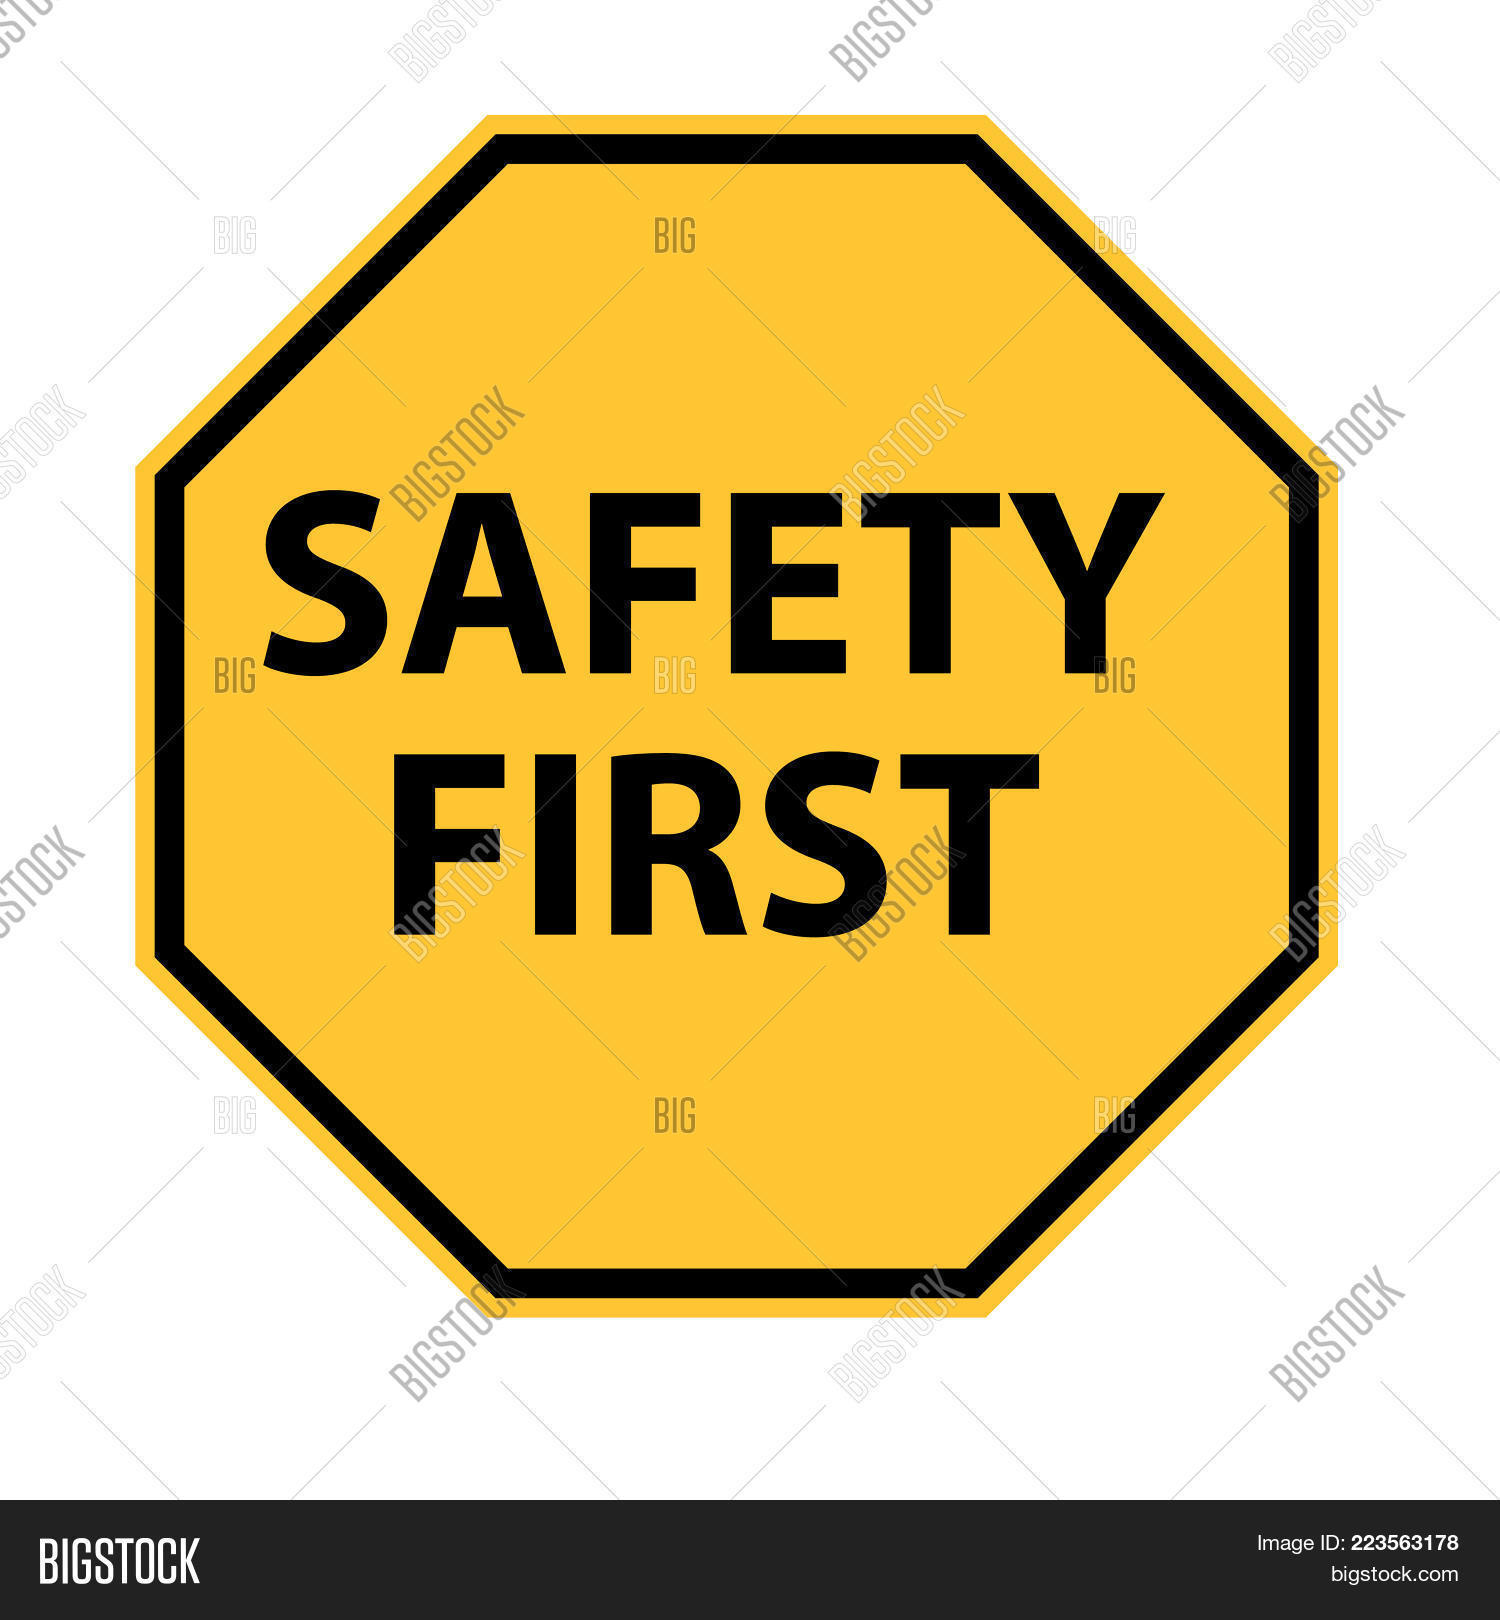 Safety First Logo On Image Photo Free Trial Bigstock